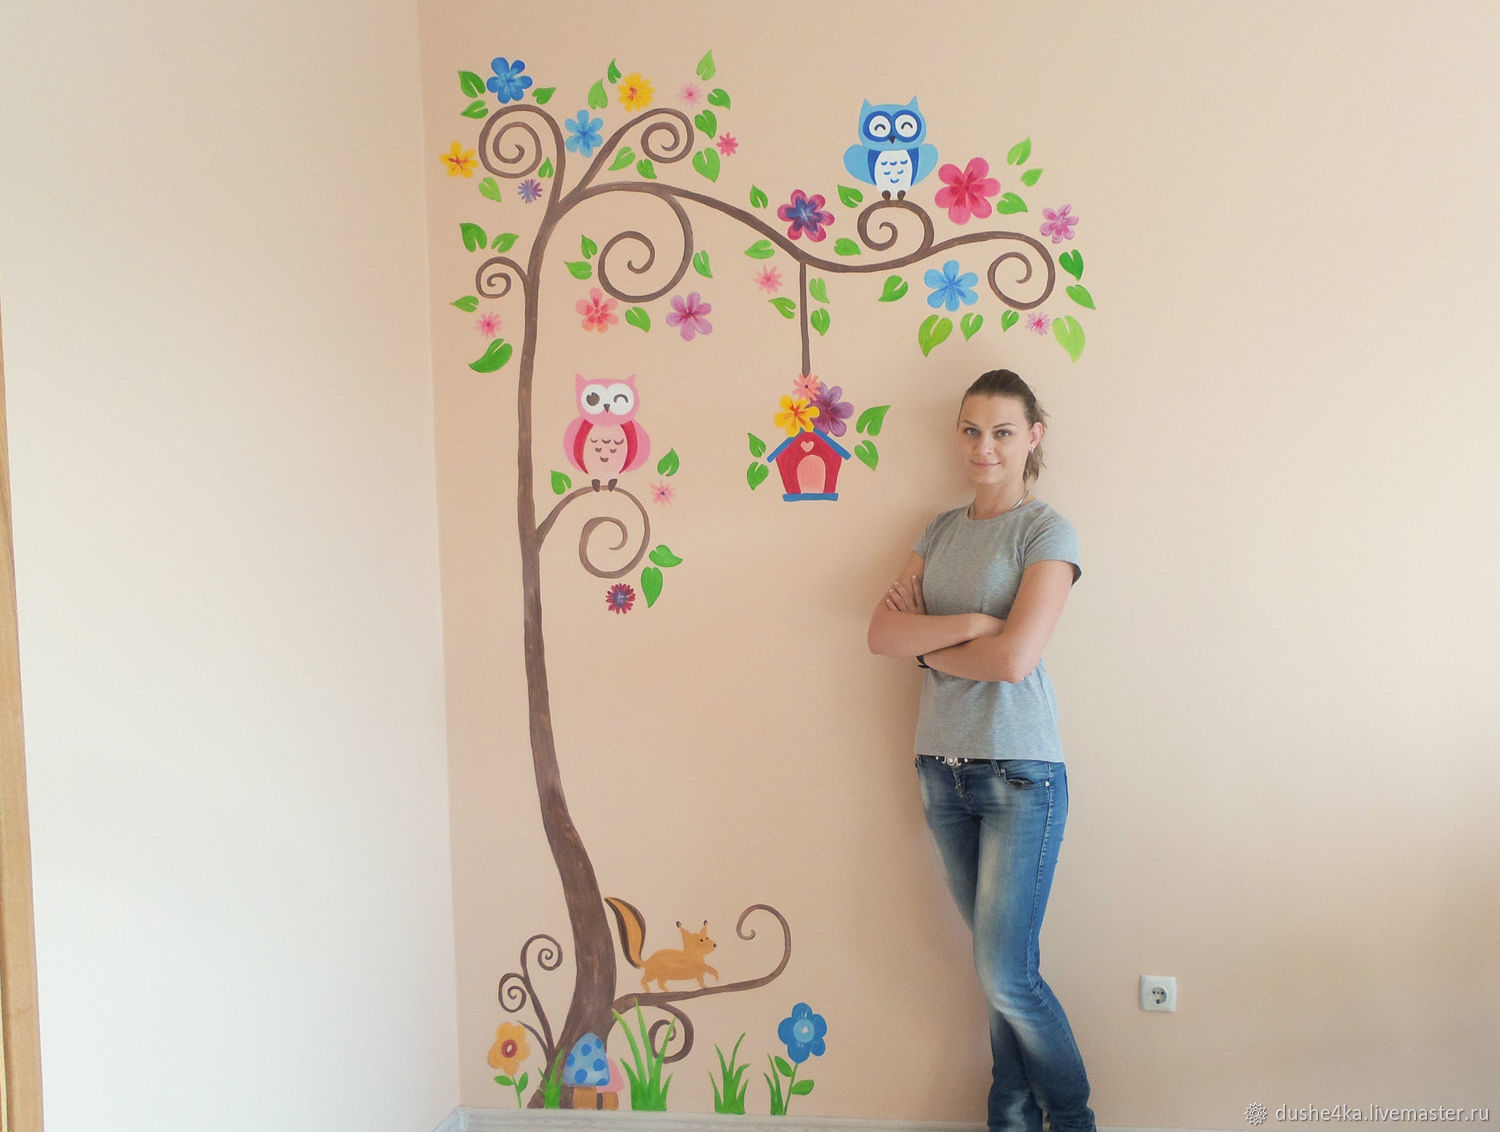 Painting The Walls In The Nursery Tree Shop Online On Livemaster With Shipping Iiqwlcom St Petersburg